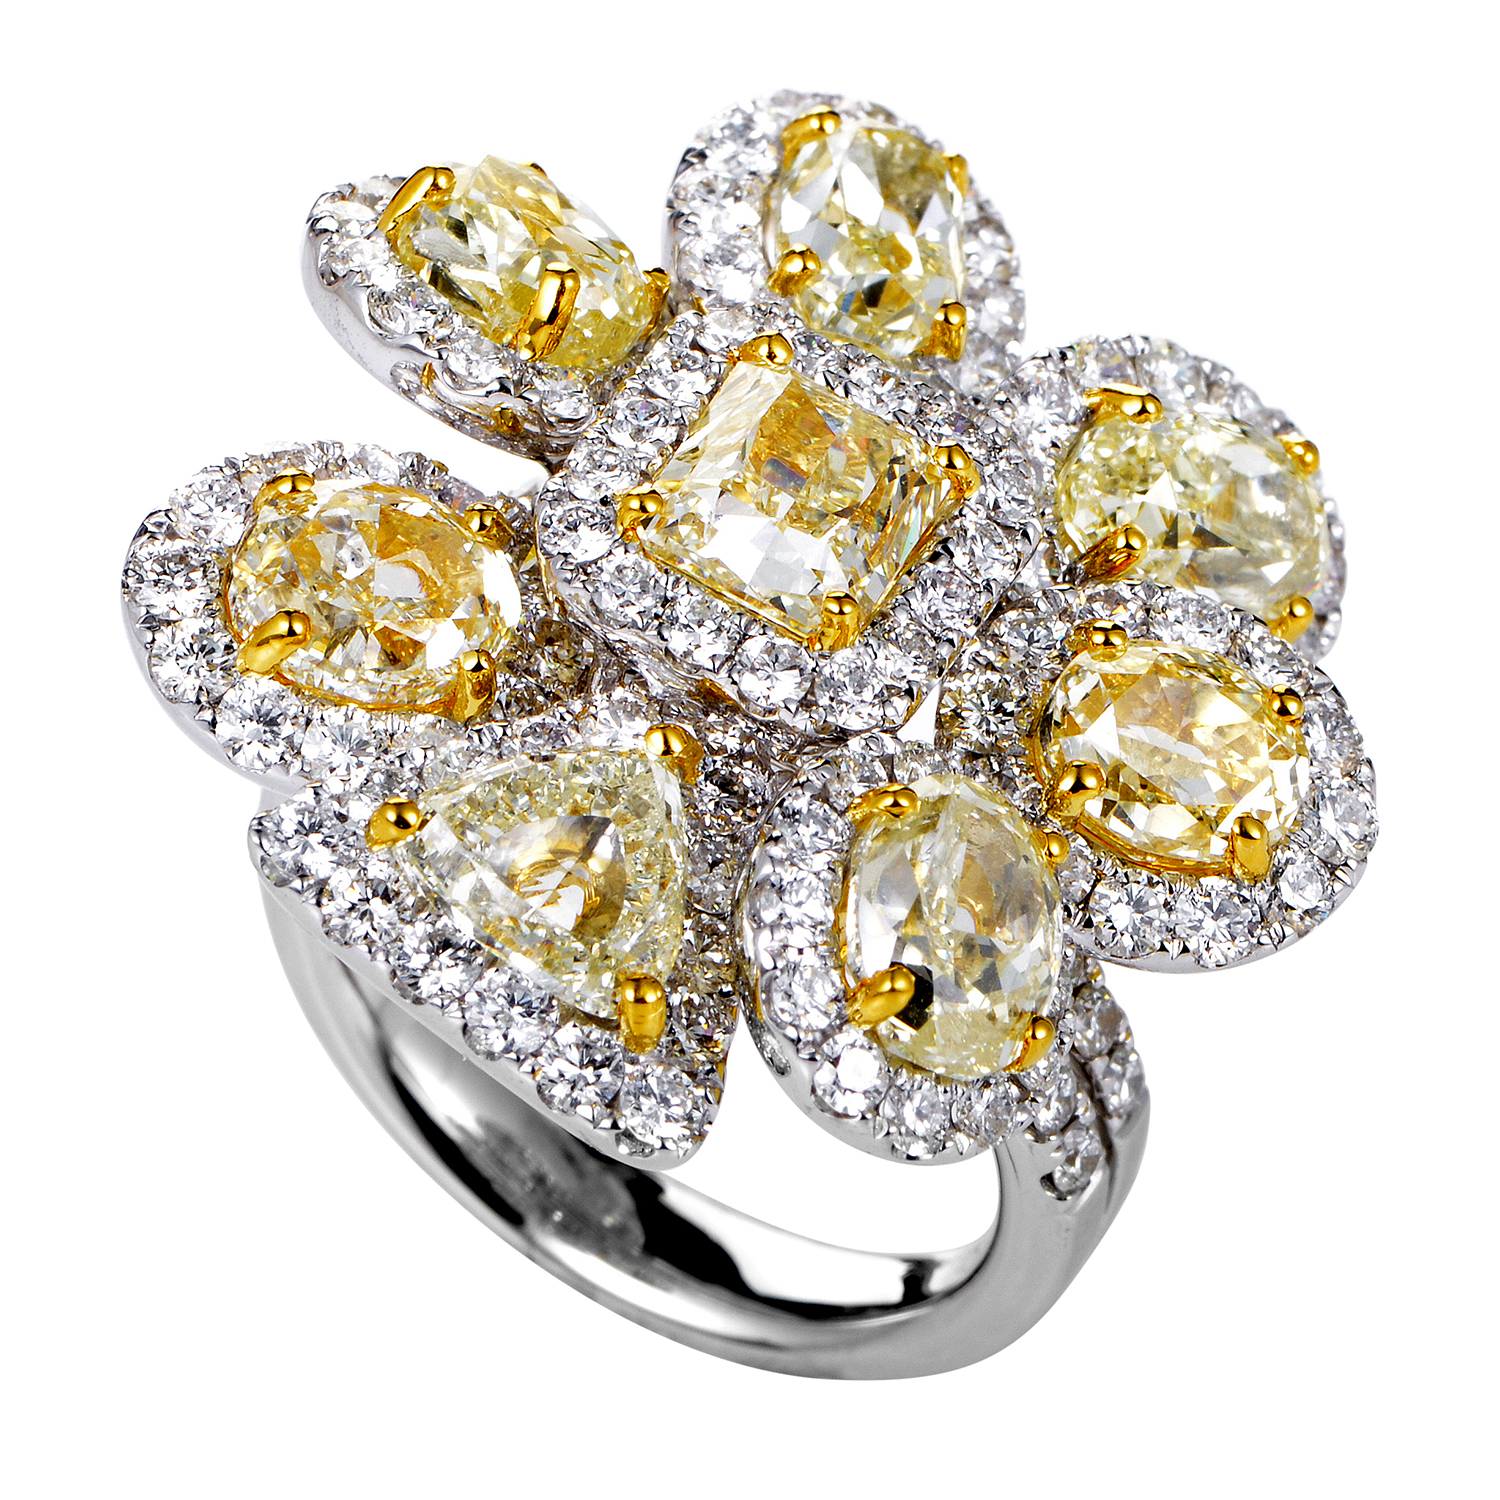 Women's 18K Multi-Tone Gold & Diamond Cluster Ring GLR-1161WY825